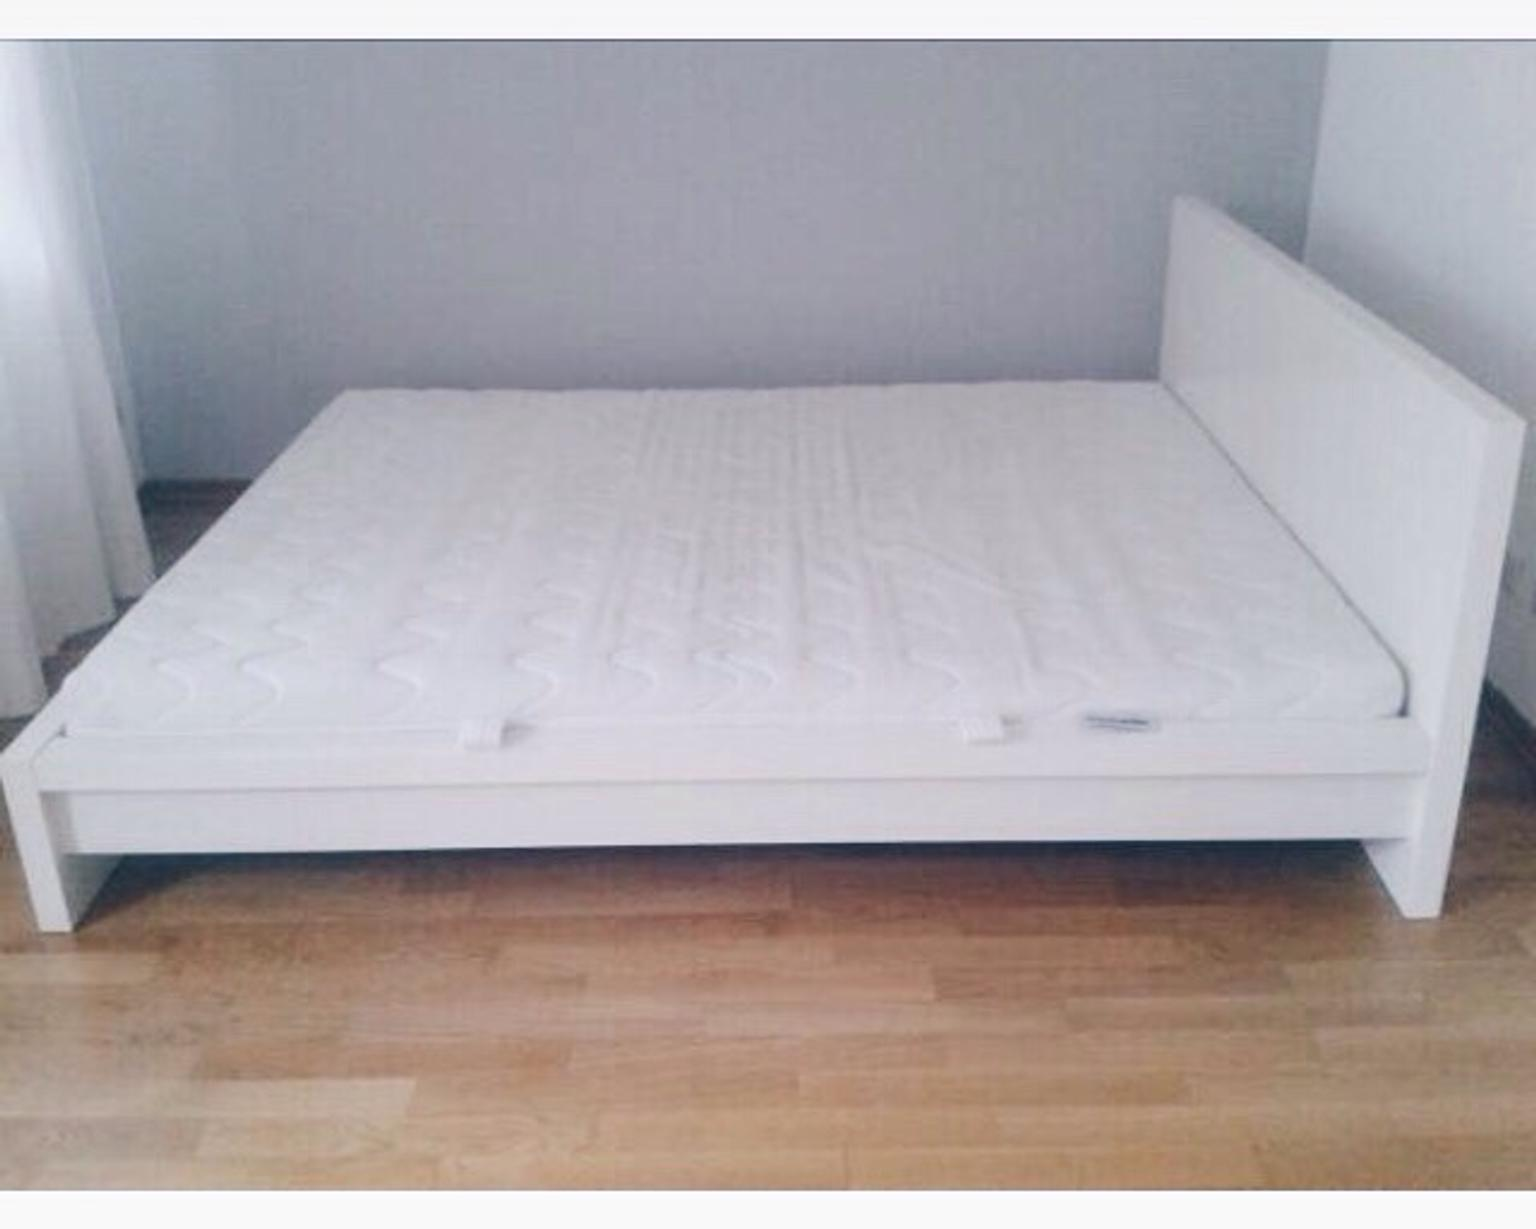 Malm Ikea Bett 1 80 X 2 00 M Niedrig Weiss In 46119 Oberhausen For 100 00 For Sale Shpock